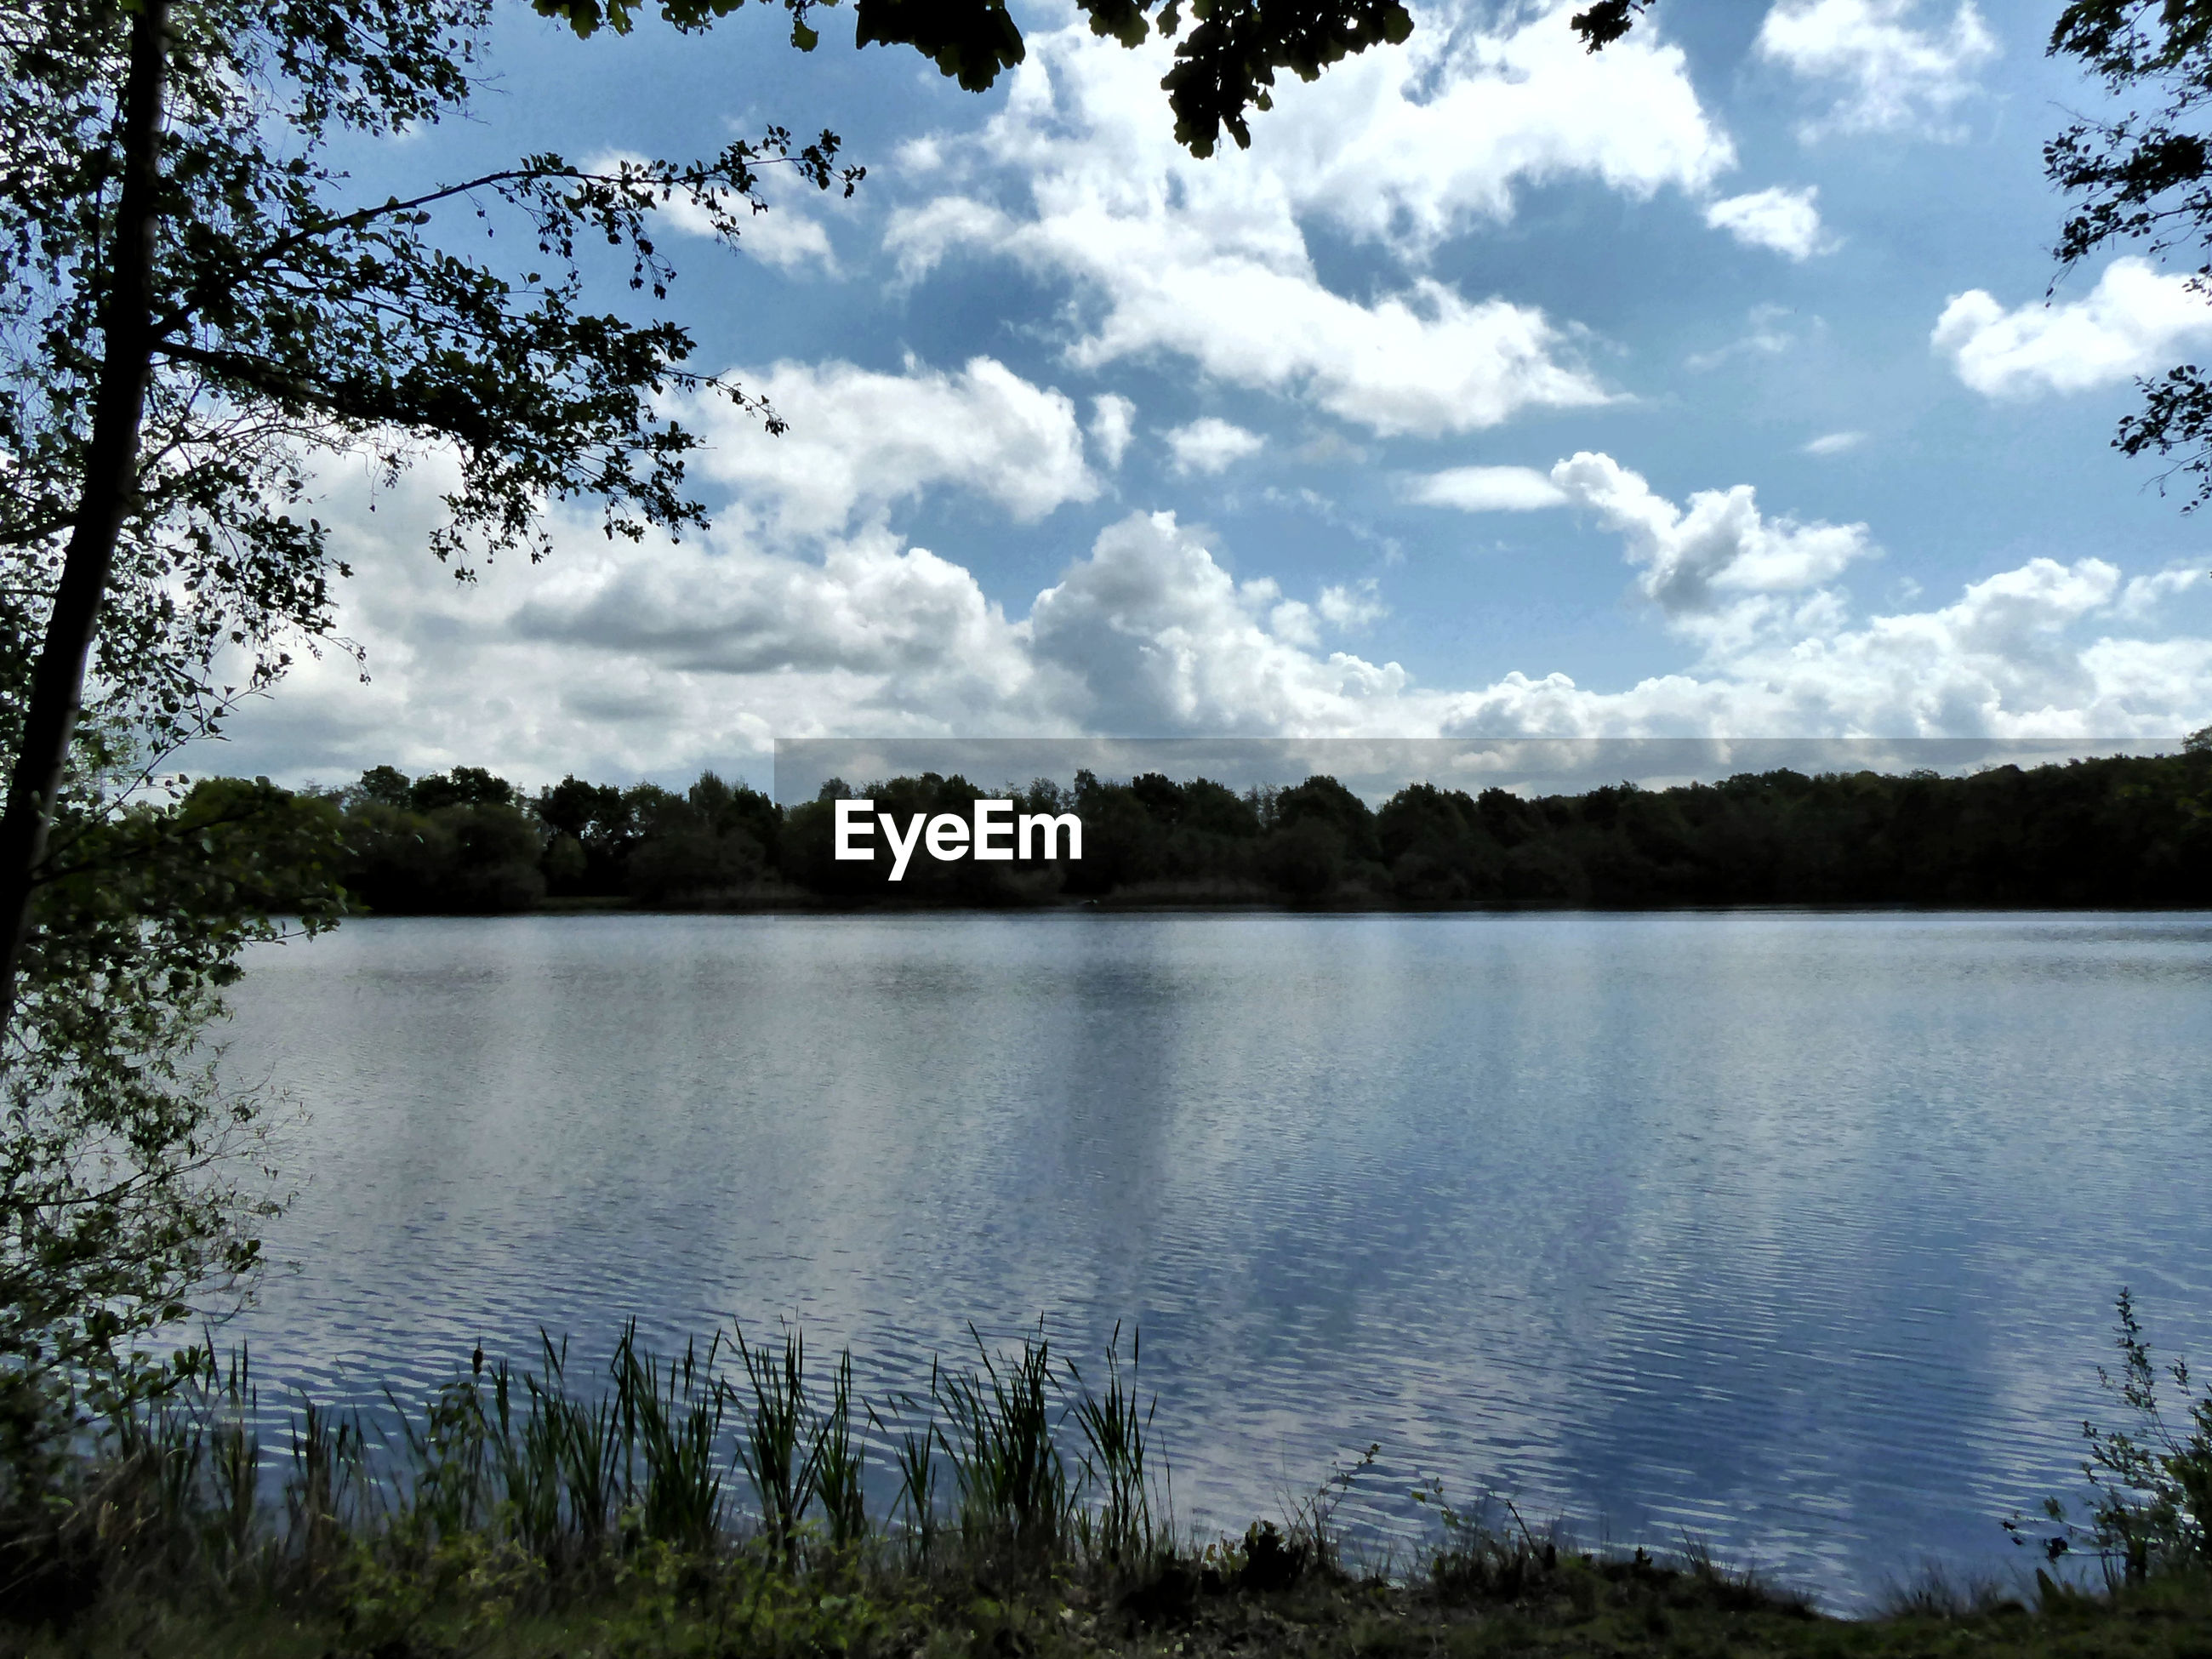 water, lake, tree, plant, sky, cloud - sky, tranquil scene, tranquility, beauty in nature, scenics - nature, nature, day, no people, non-urban scene, reflection, forest, outdoors, lakeshore, landscape